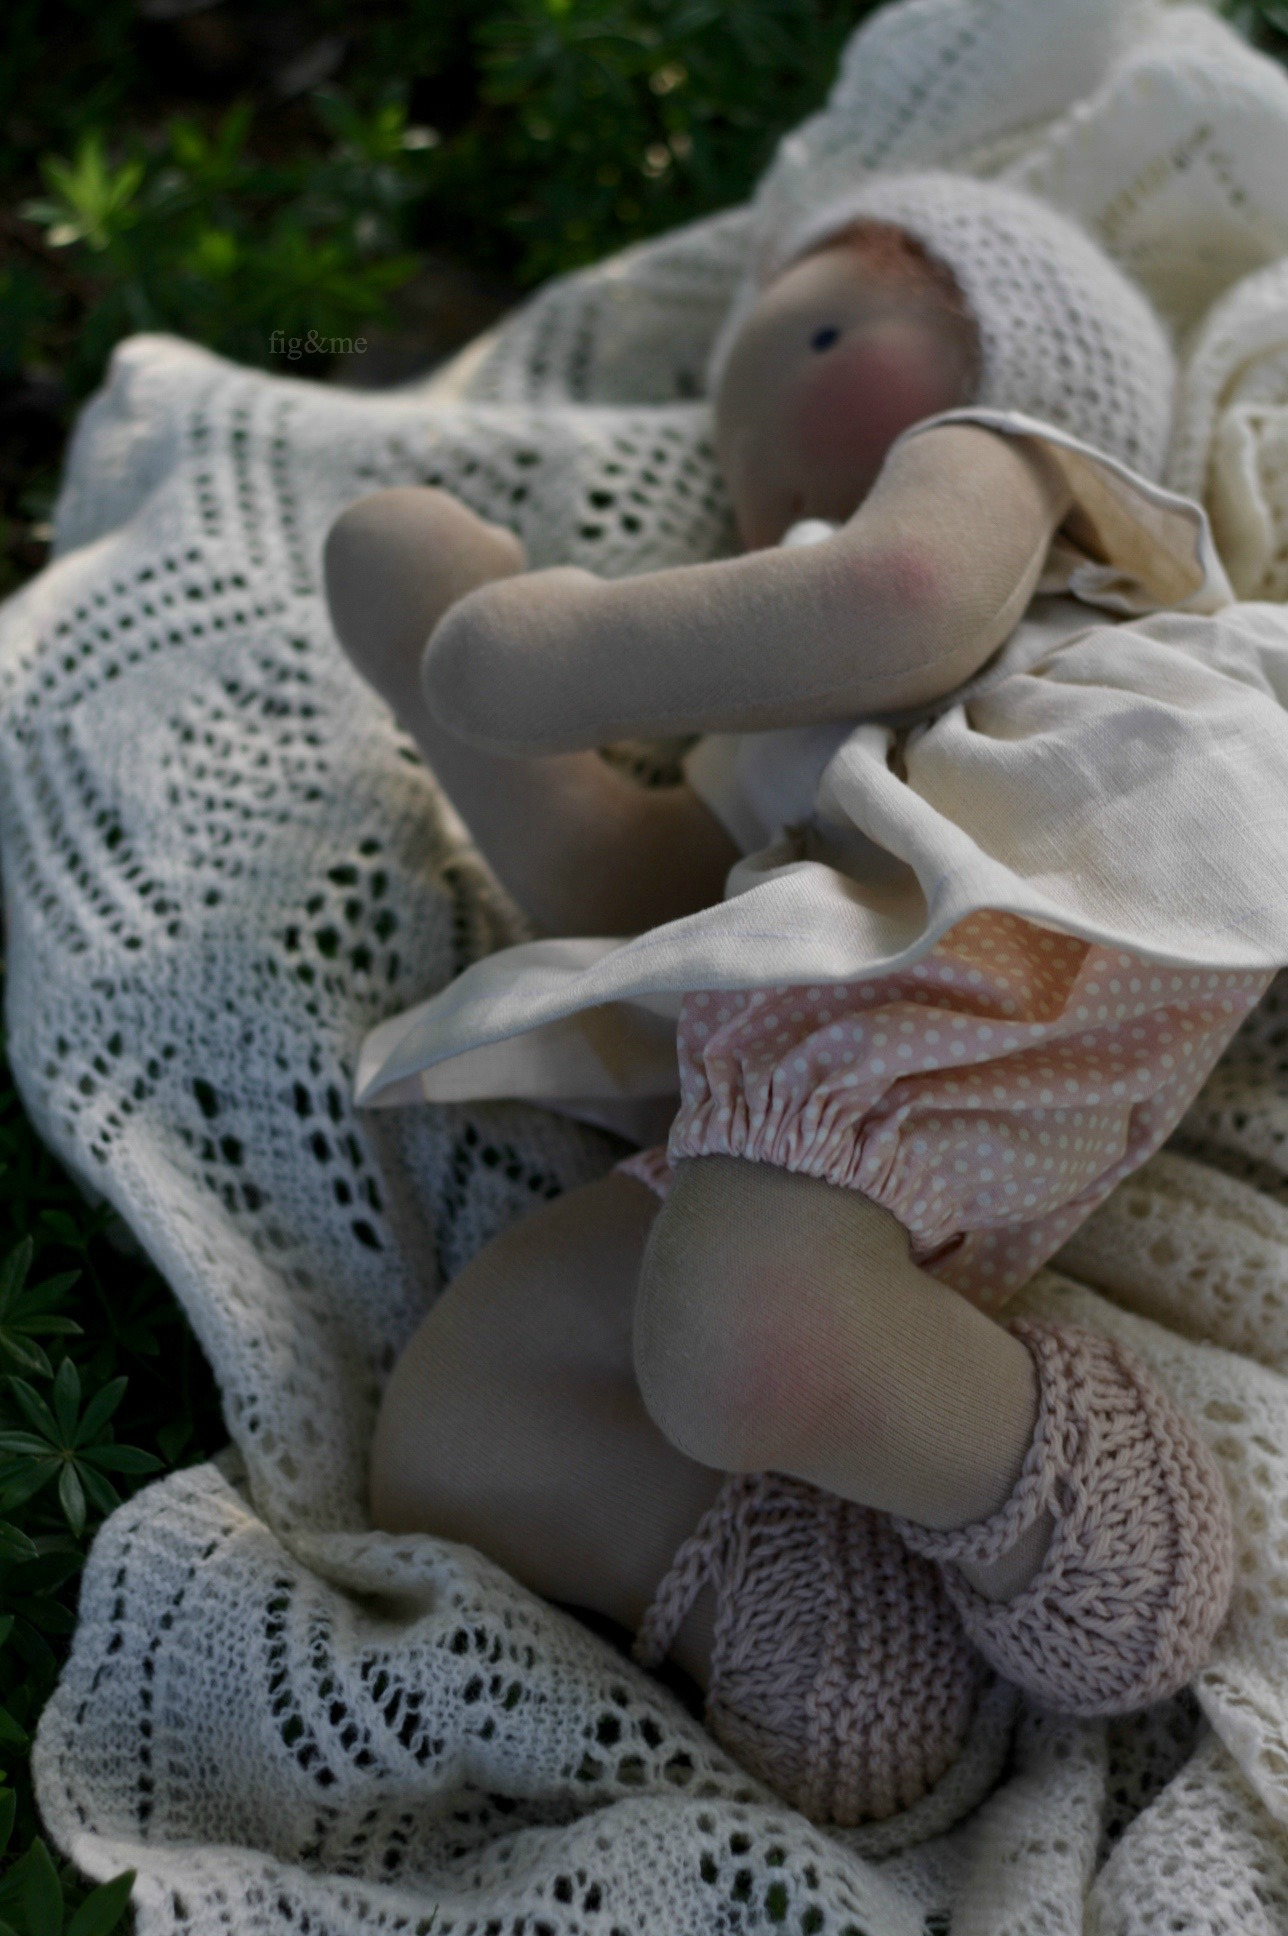 Elderflower, a natural baby doll by Figandme.